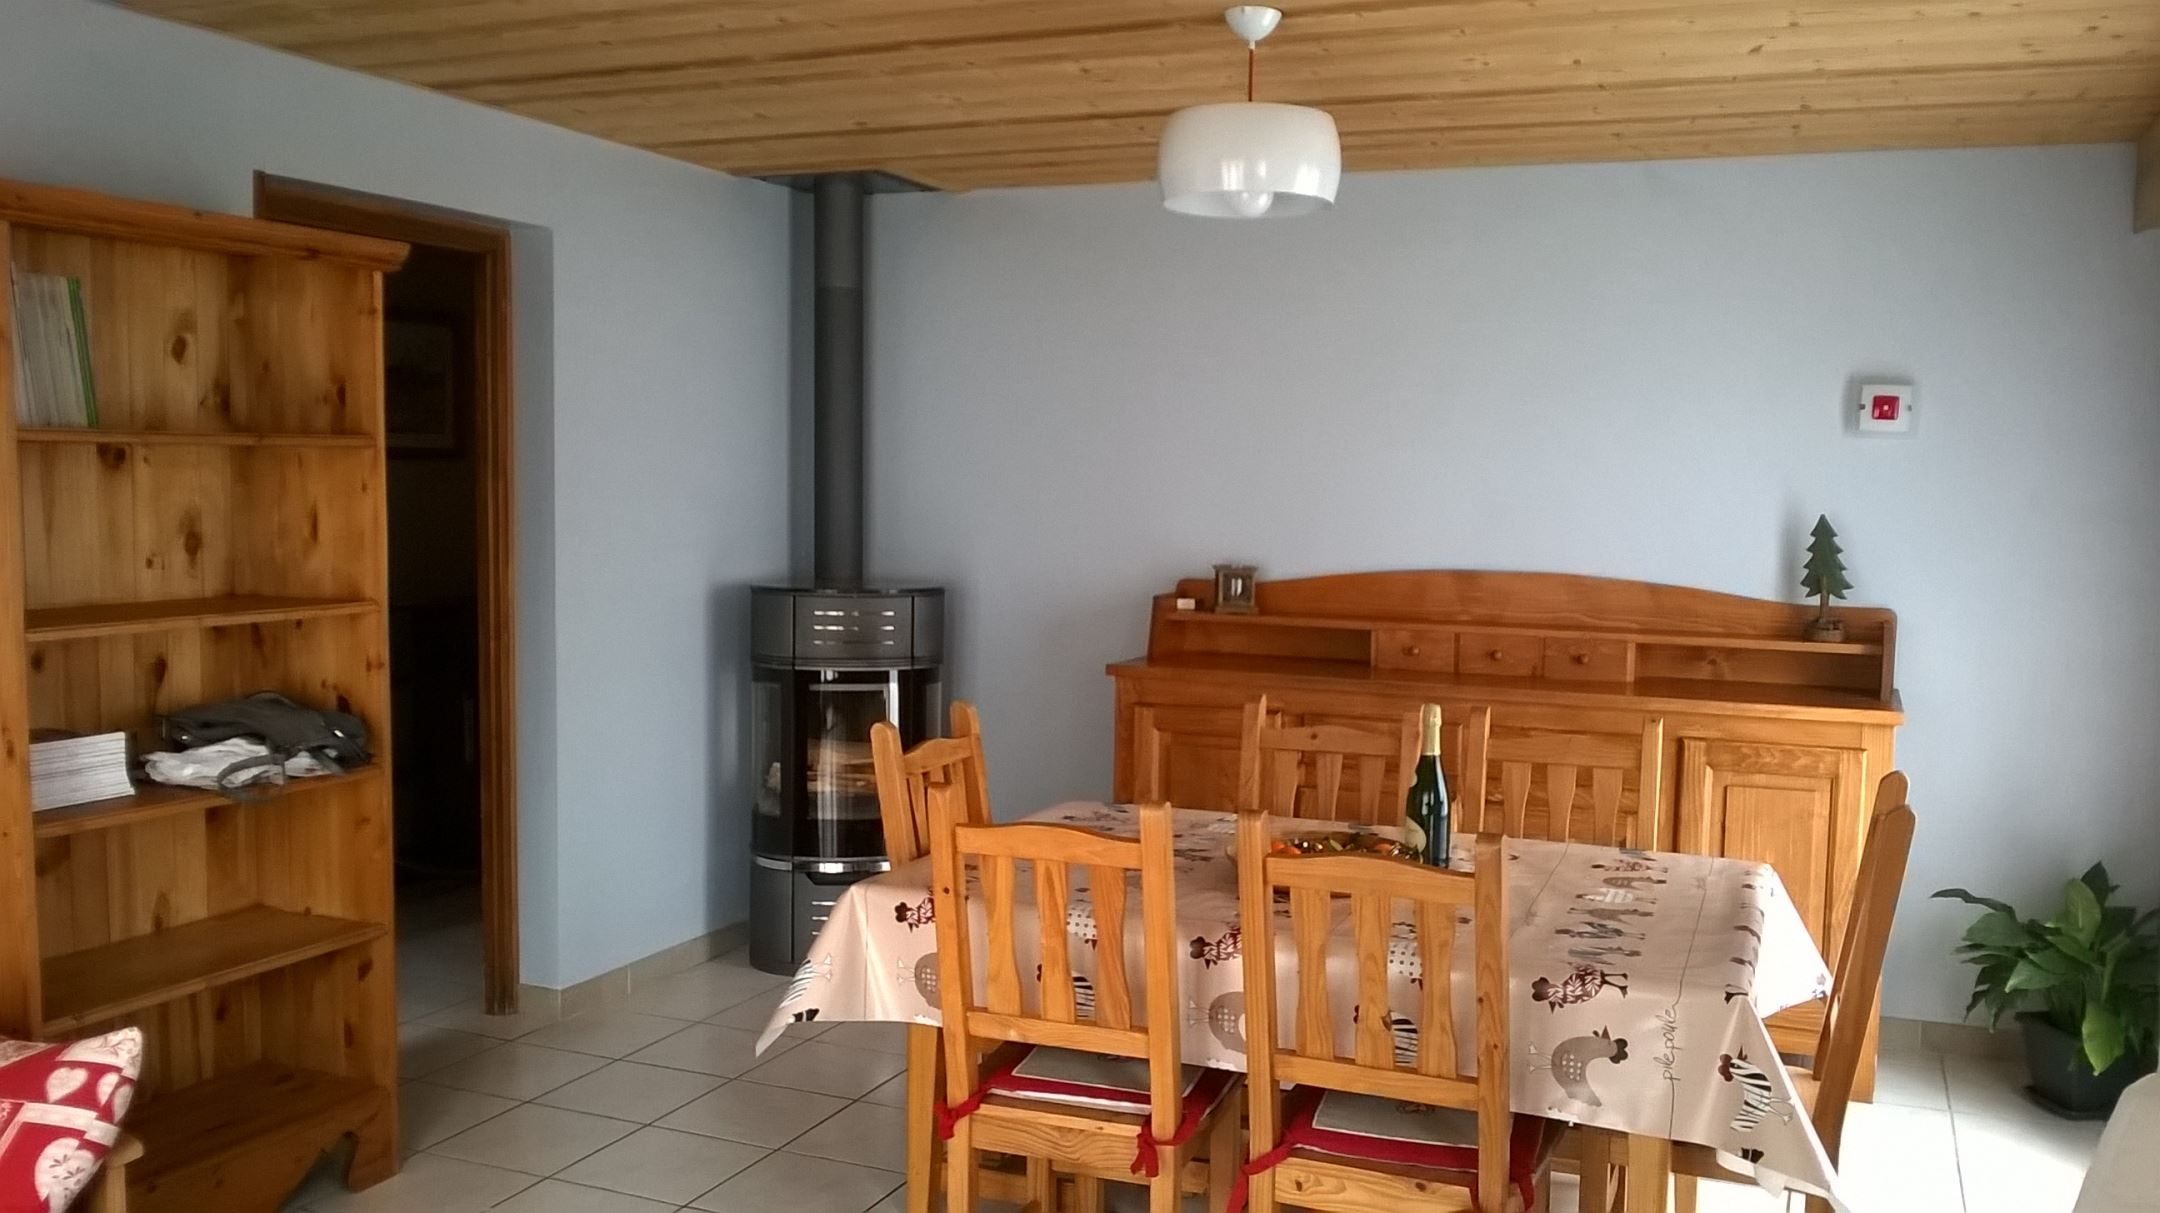 Perrières n°1 - 3 rooms - 4 to 6 people - 70m²